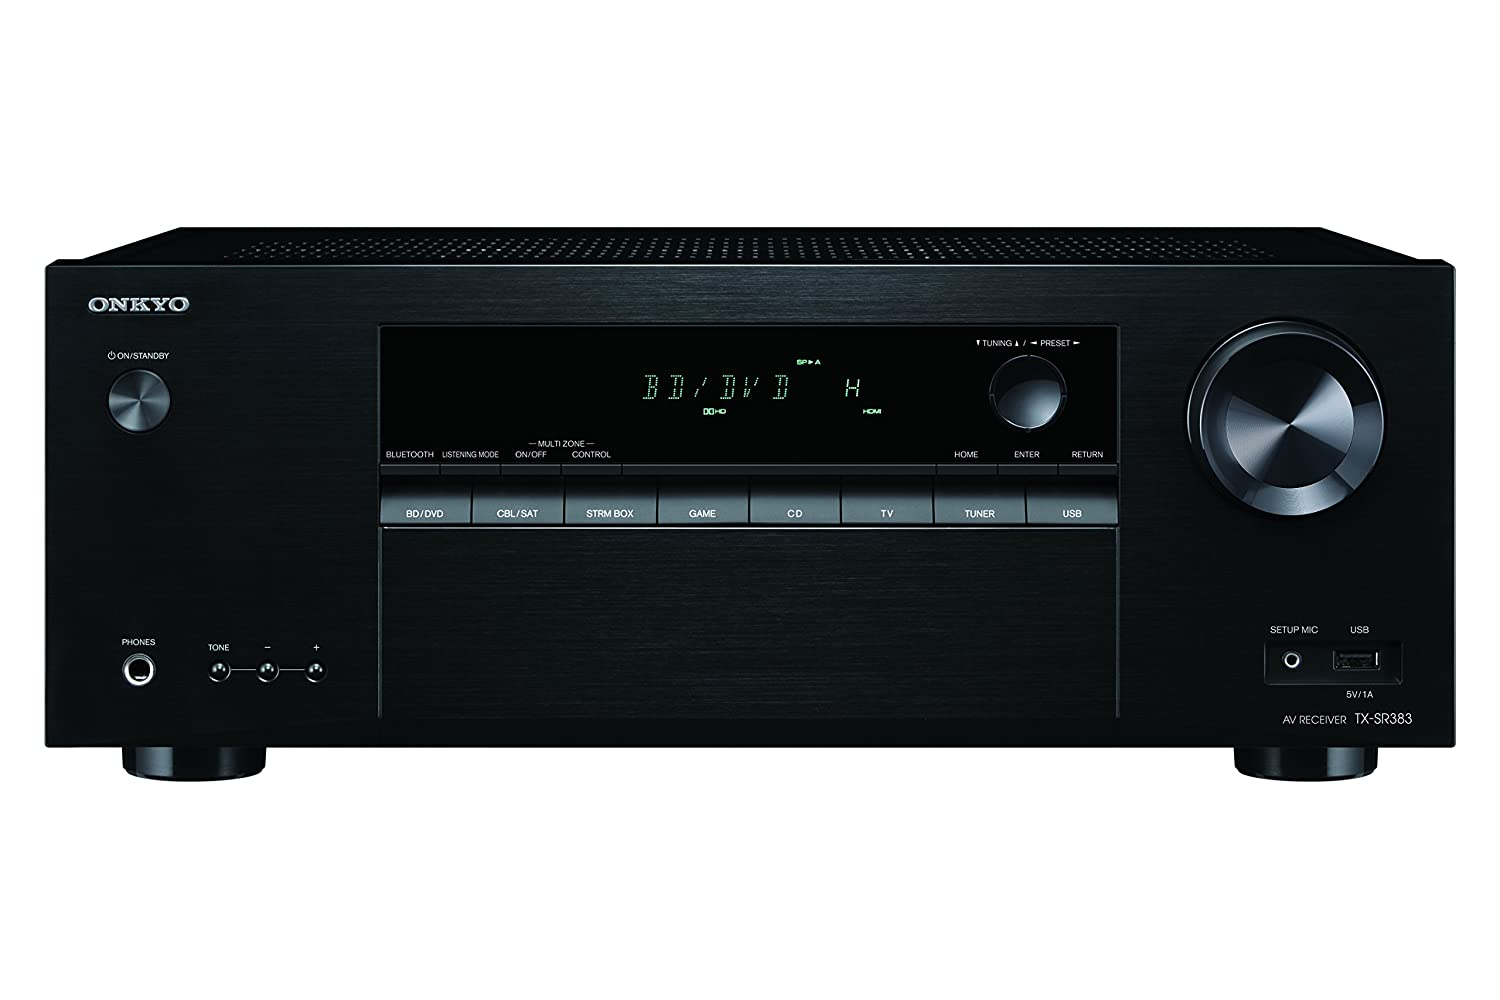 Onkyo Surround Sound Audio & Video Component Receiver Black (TX-SR383)